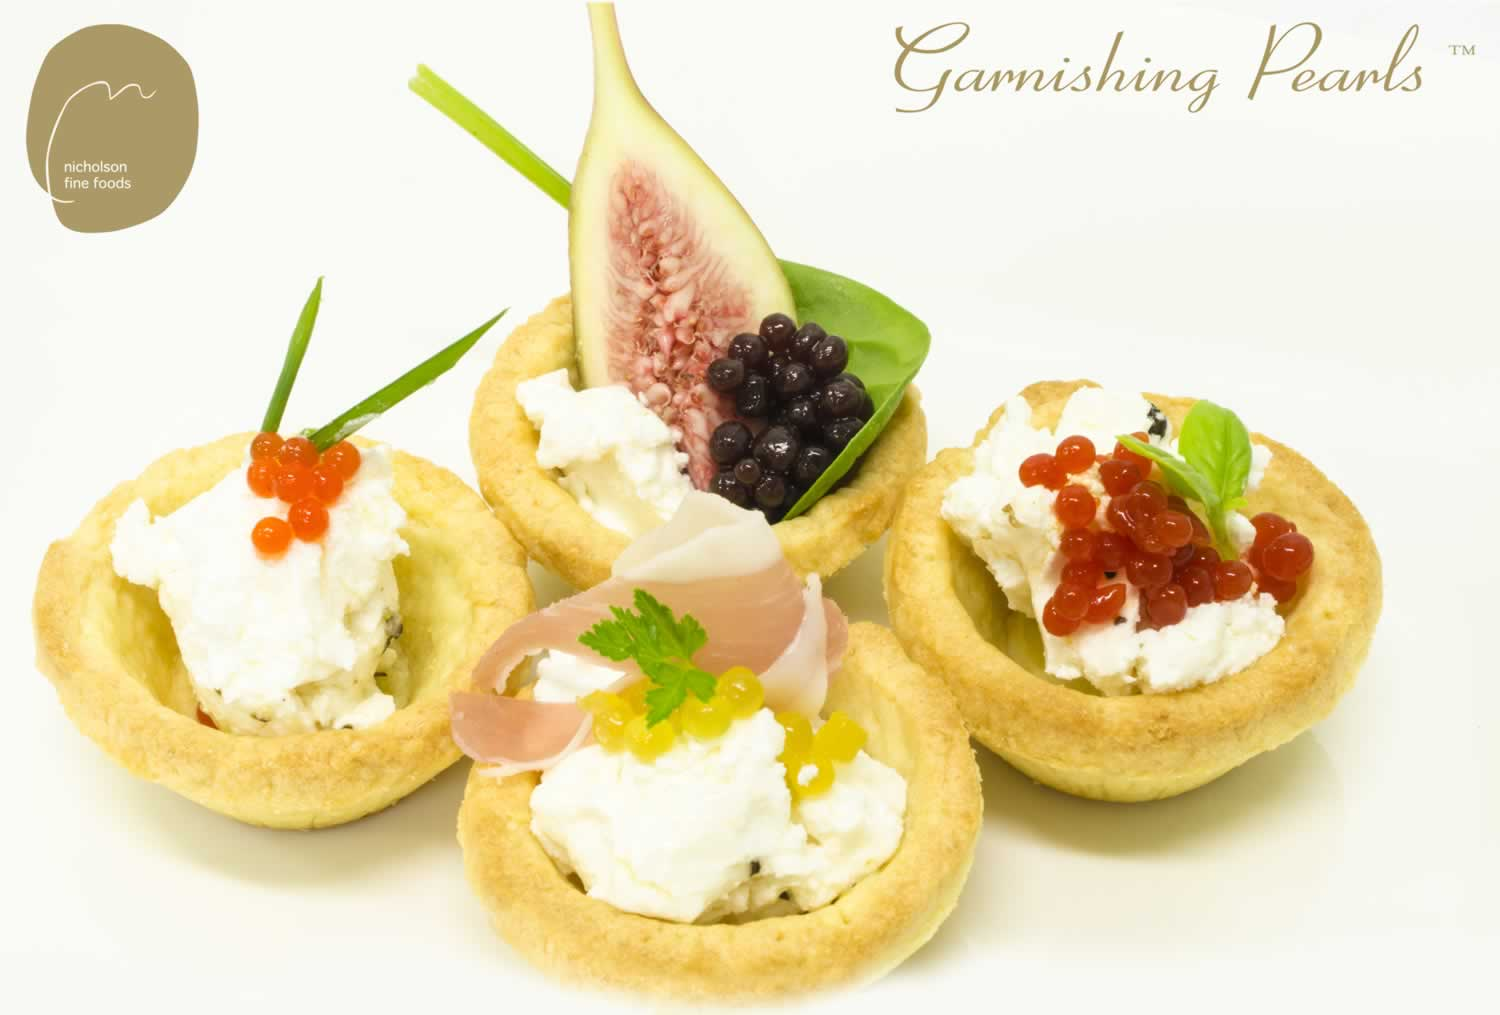 garnishing-Pearls-with-goats-cheese